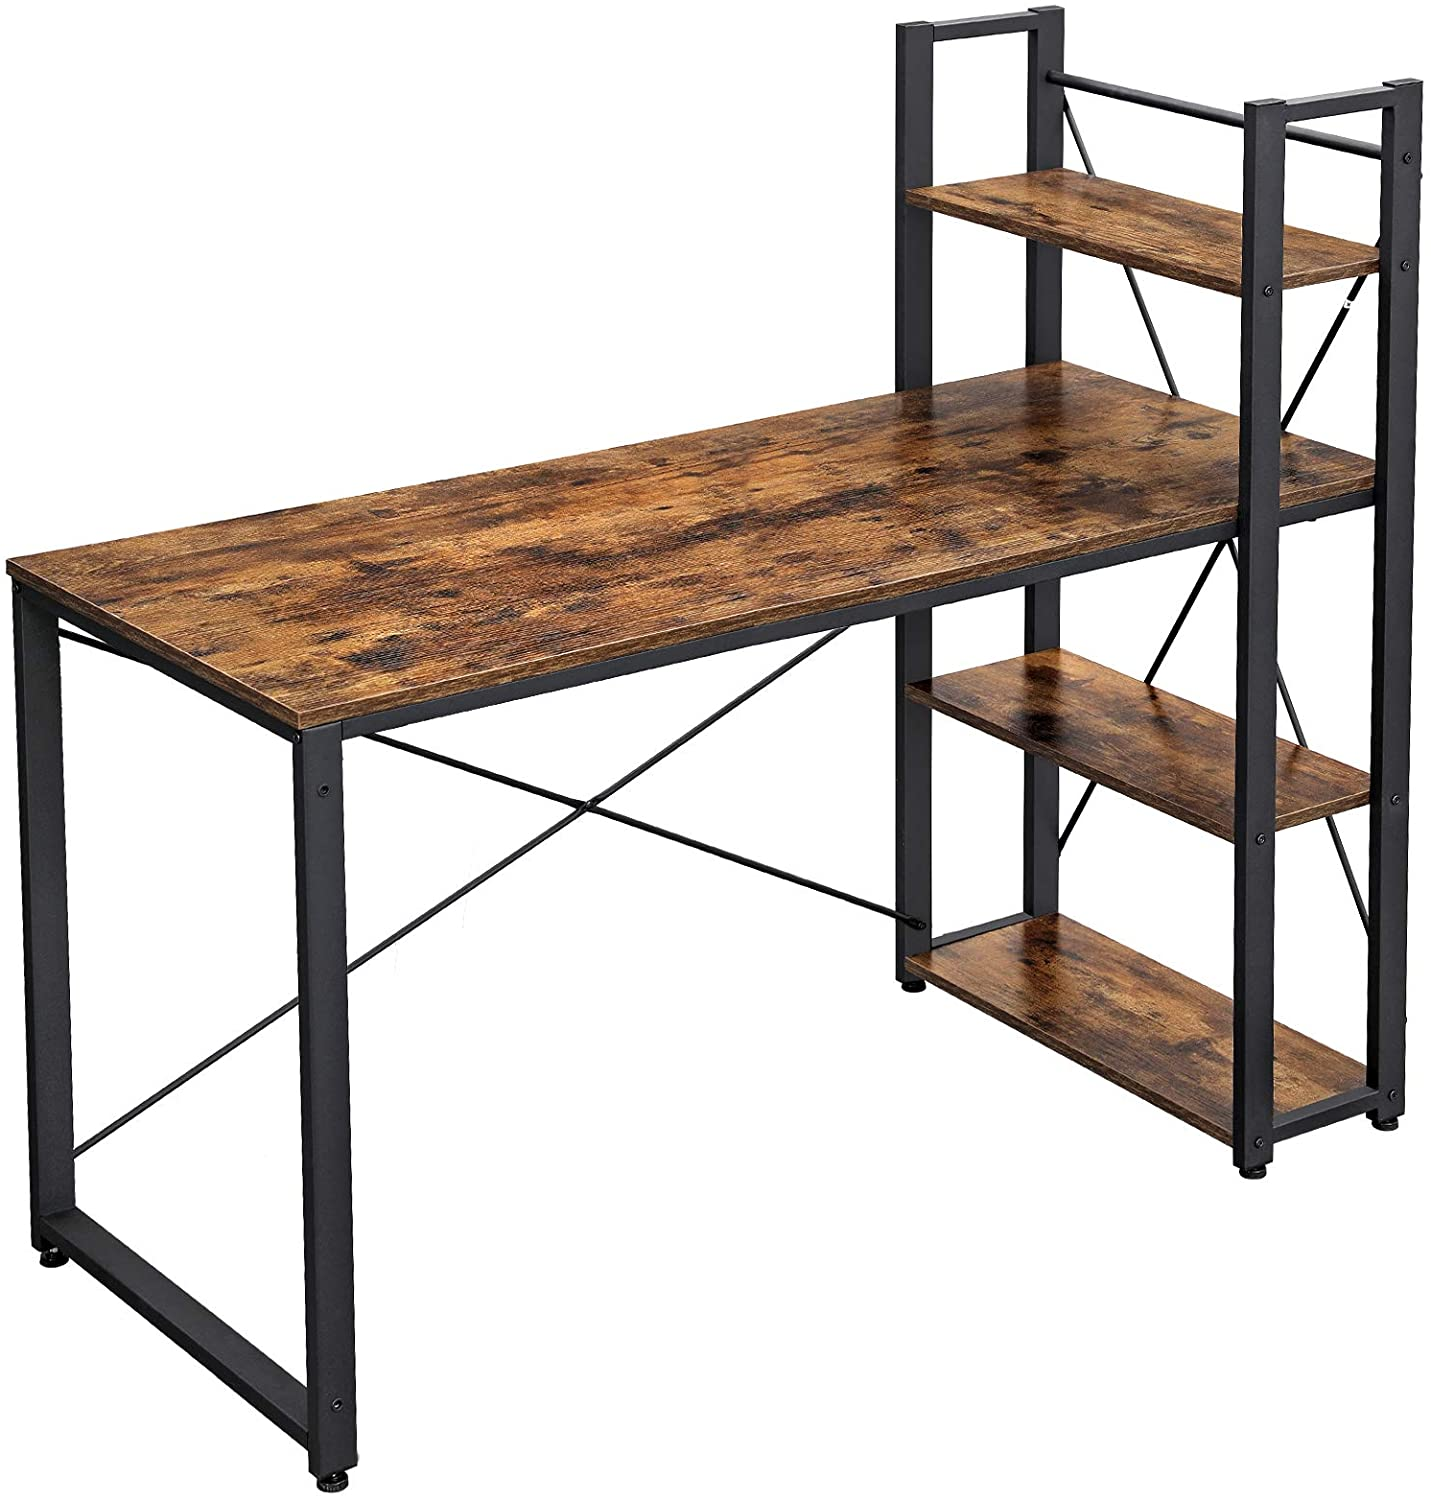 VASAGLE Computer Desk, 55 Inch Study Writing Desk with Storage Shelves for Home Office, Industrial Style PC Laptop Table, Easy Assembly, Sturdy, Rustic Brown and Black ULWD49X